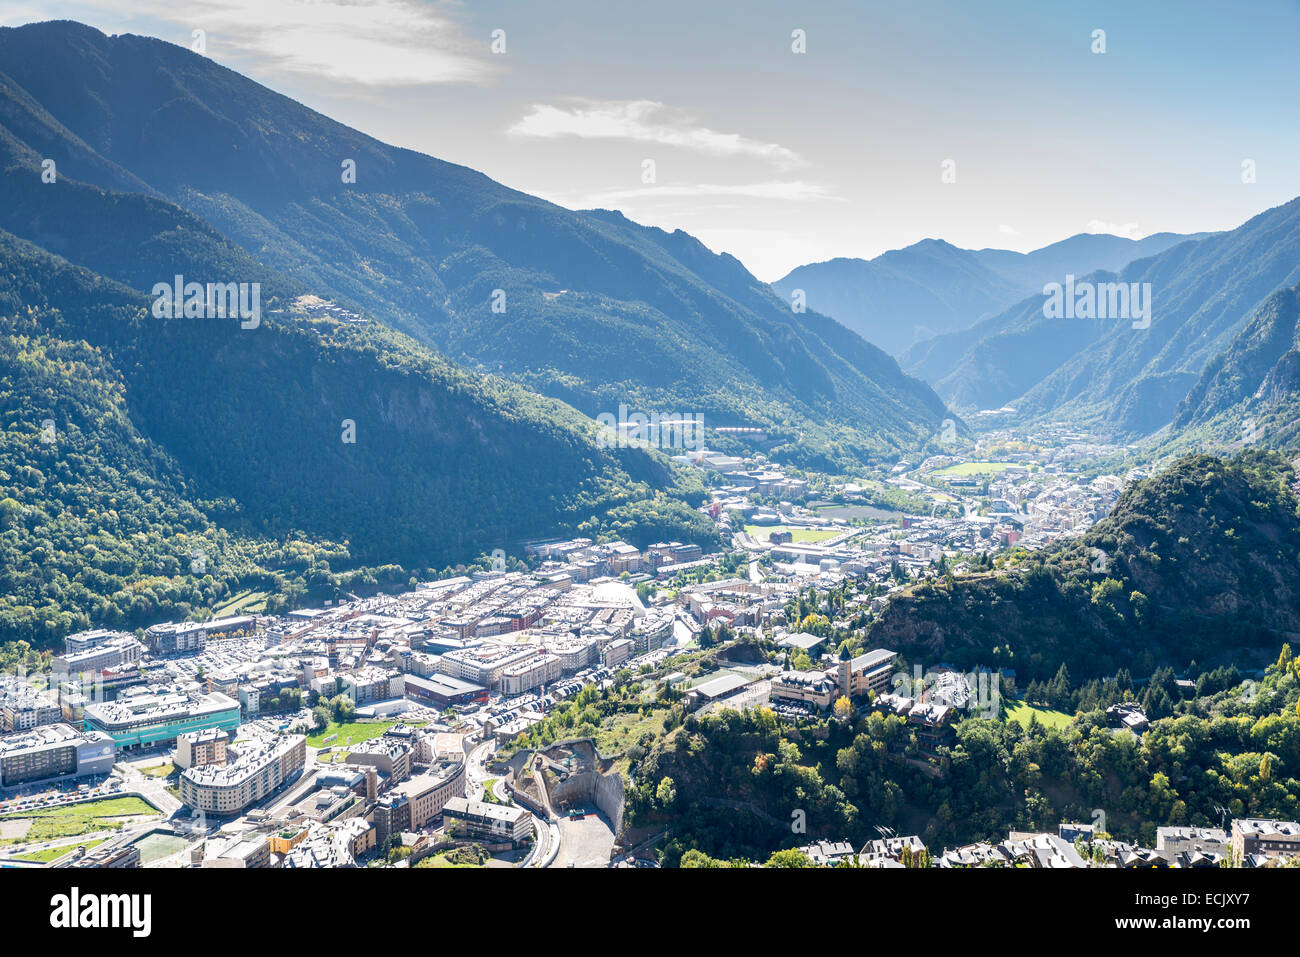 city of Andorra La Vella view from the mountain - Stock Image